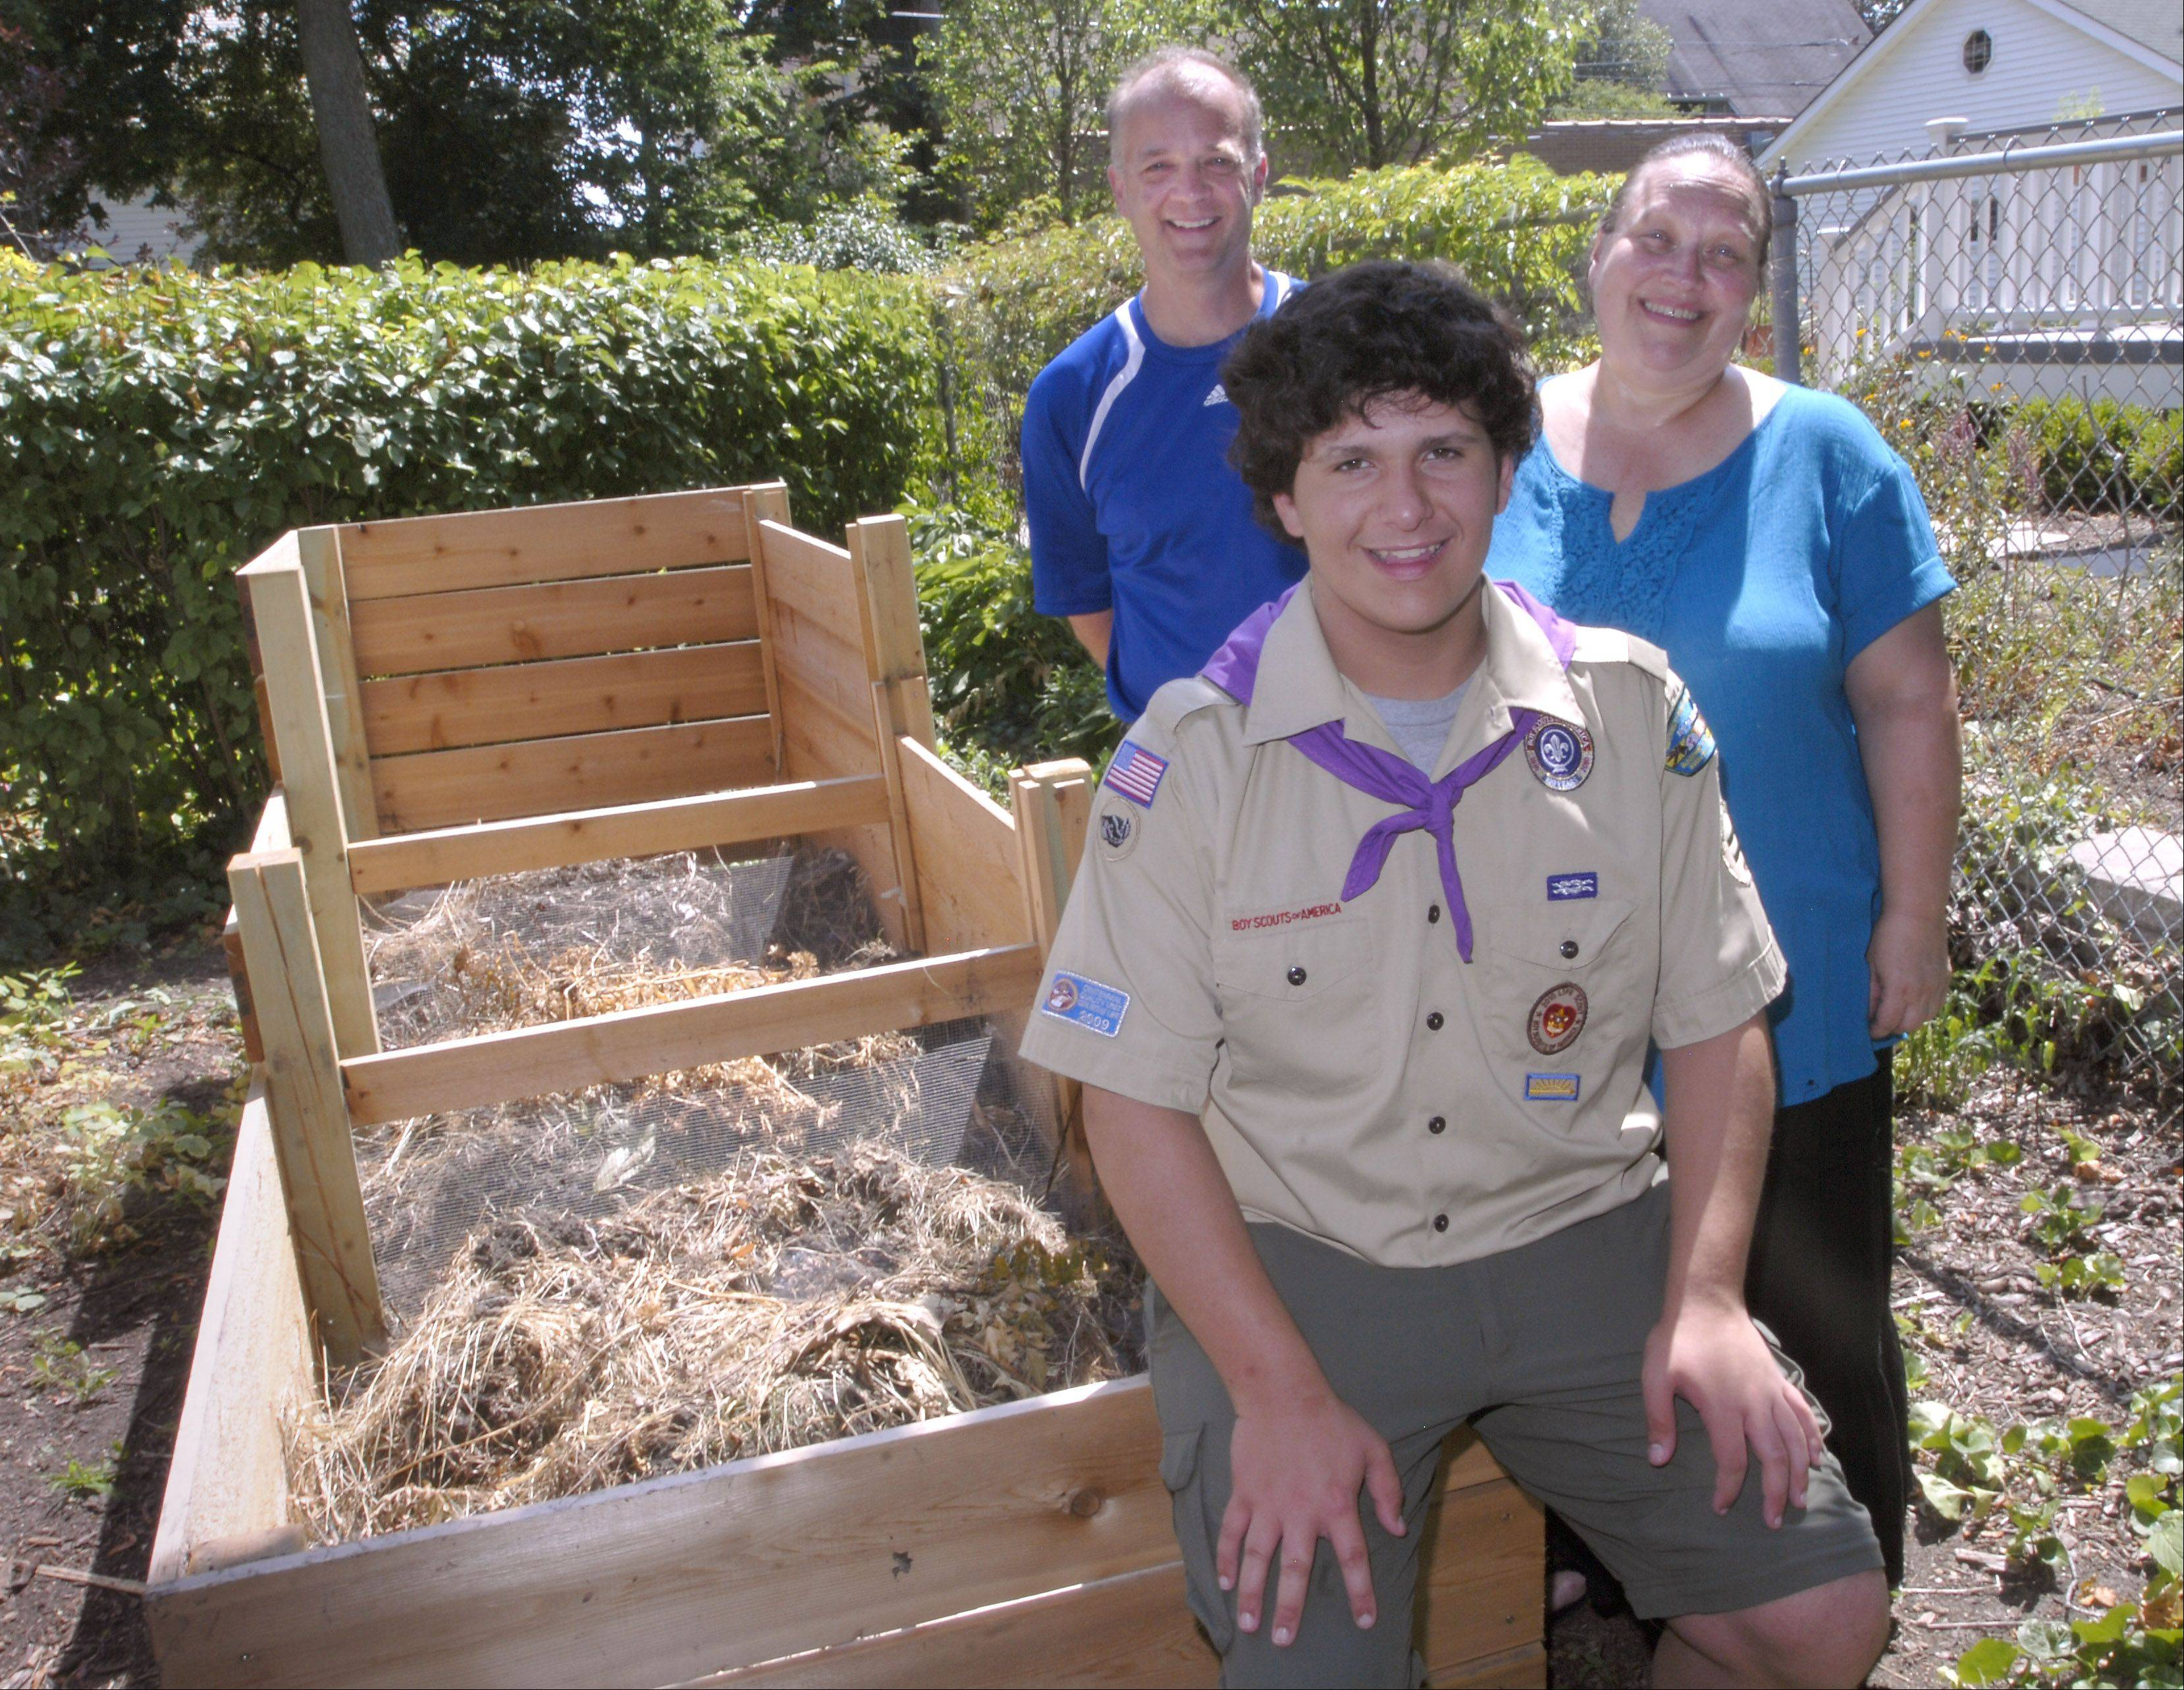 Garden Clubbers Thom Kraak and Diane Bolash helped Chris Clarizio, 14, of Arlington Heights, design and build a three-section compost bin on the grounds of the Arlington Heights History Center for his Eagle Scout project.